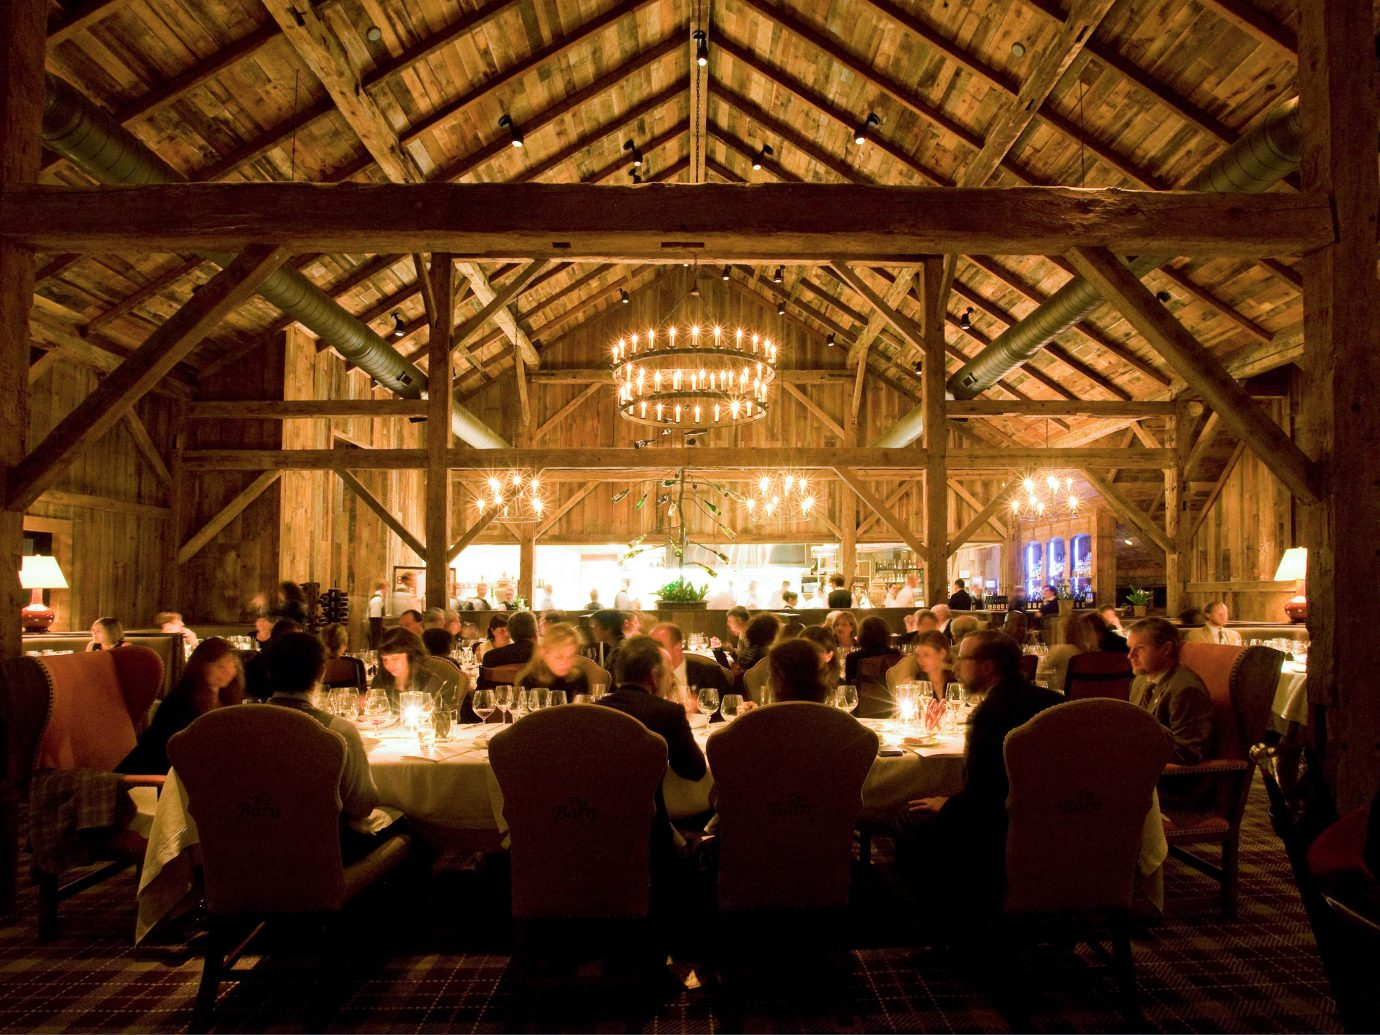 All-Inclusive Resorts Dining Drink Eat Elegant Glamping Hotels Romance Rustic Sport indoor person people ceiling group ceremony